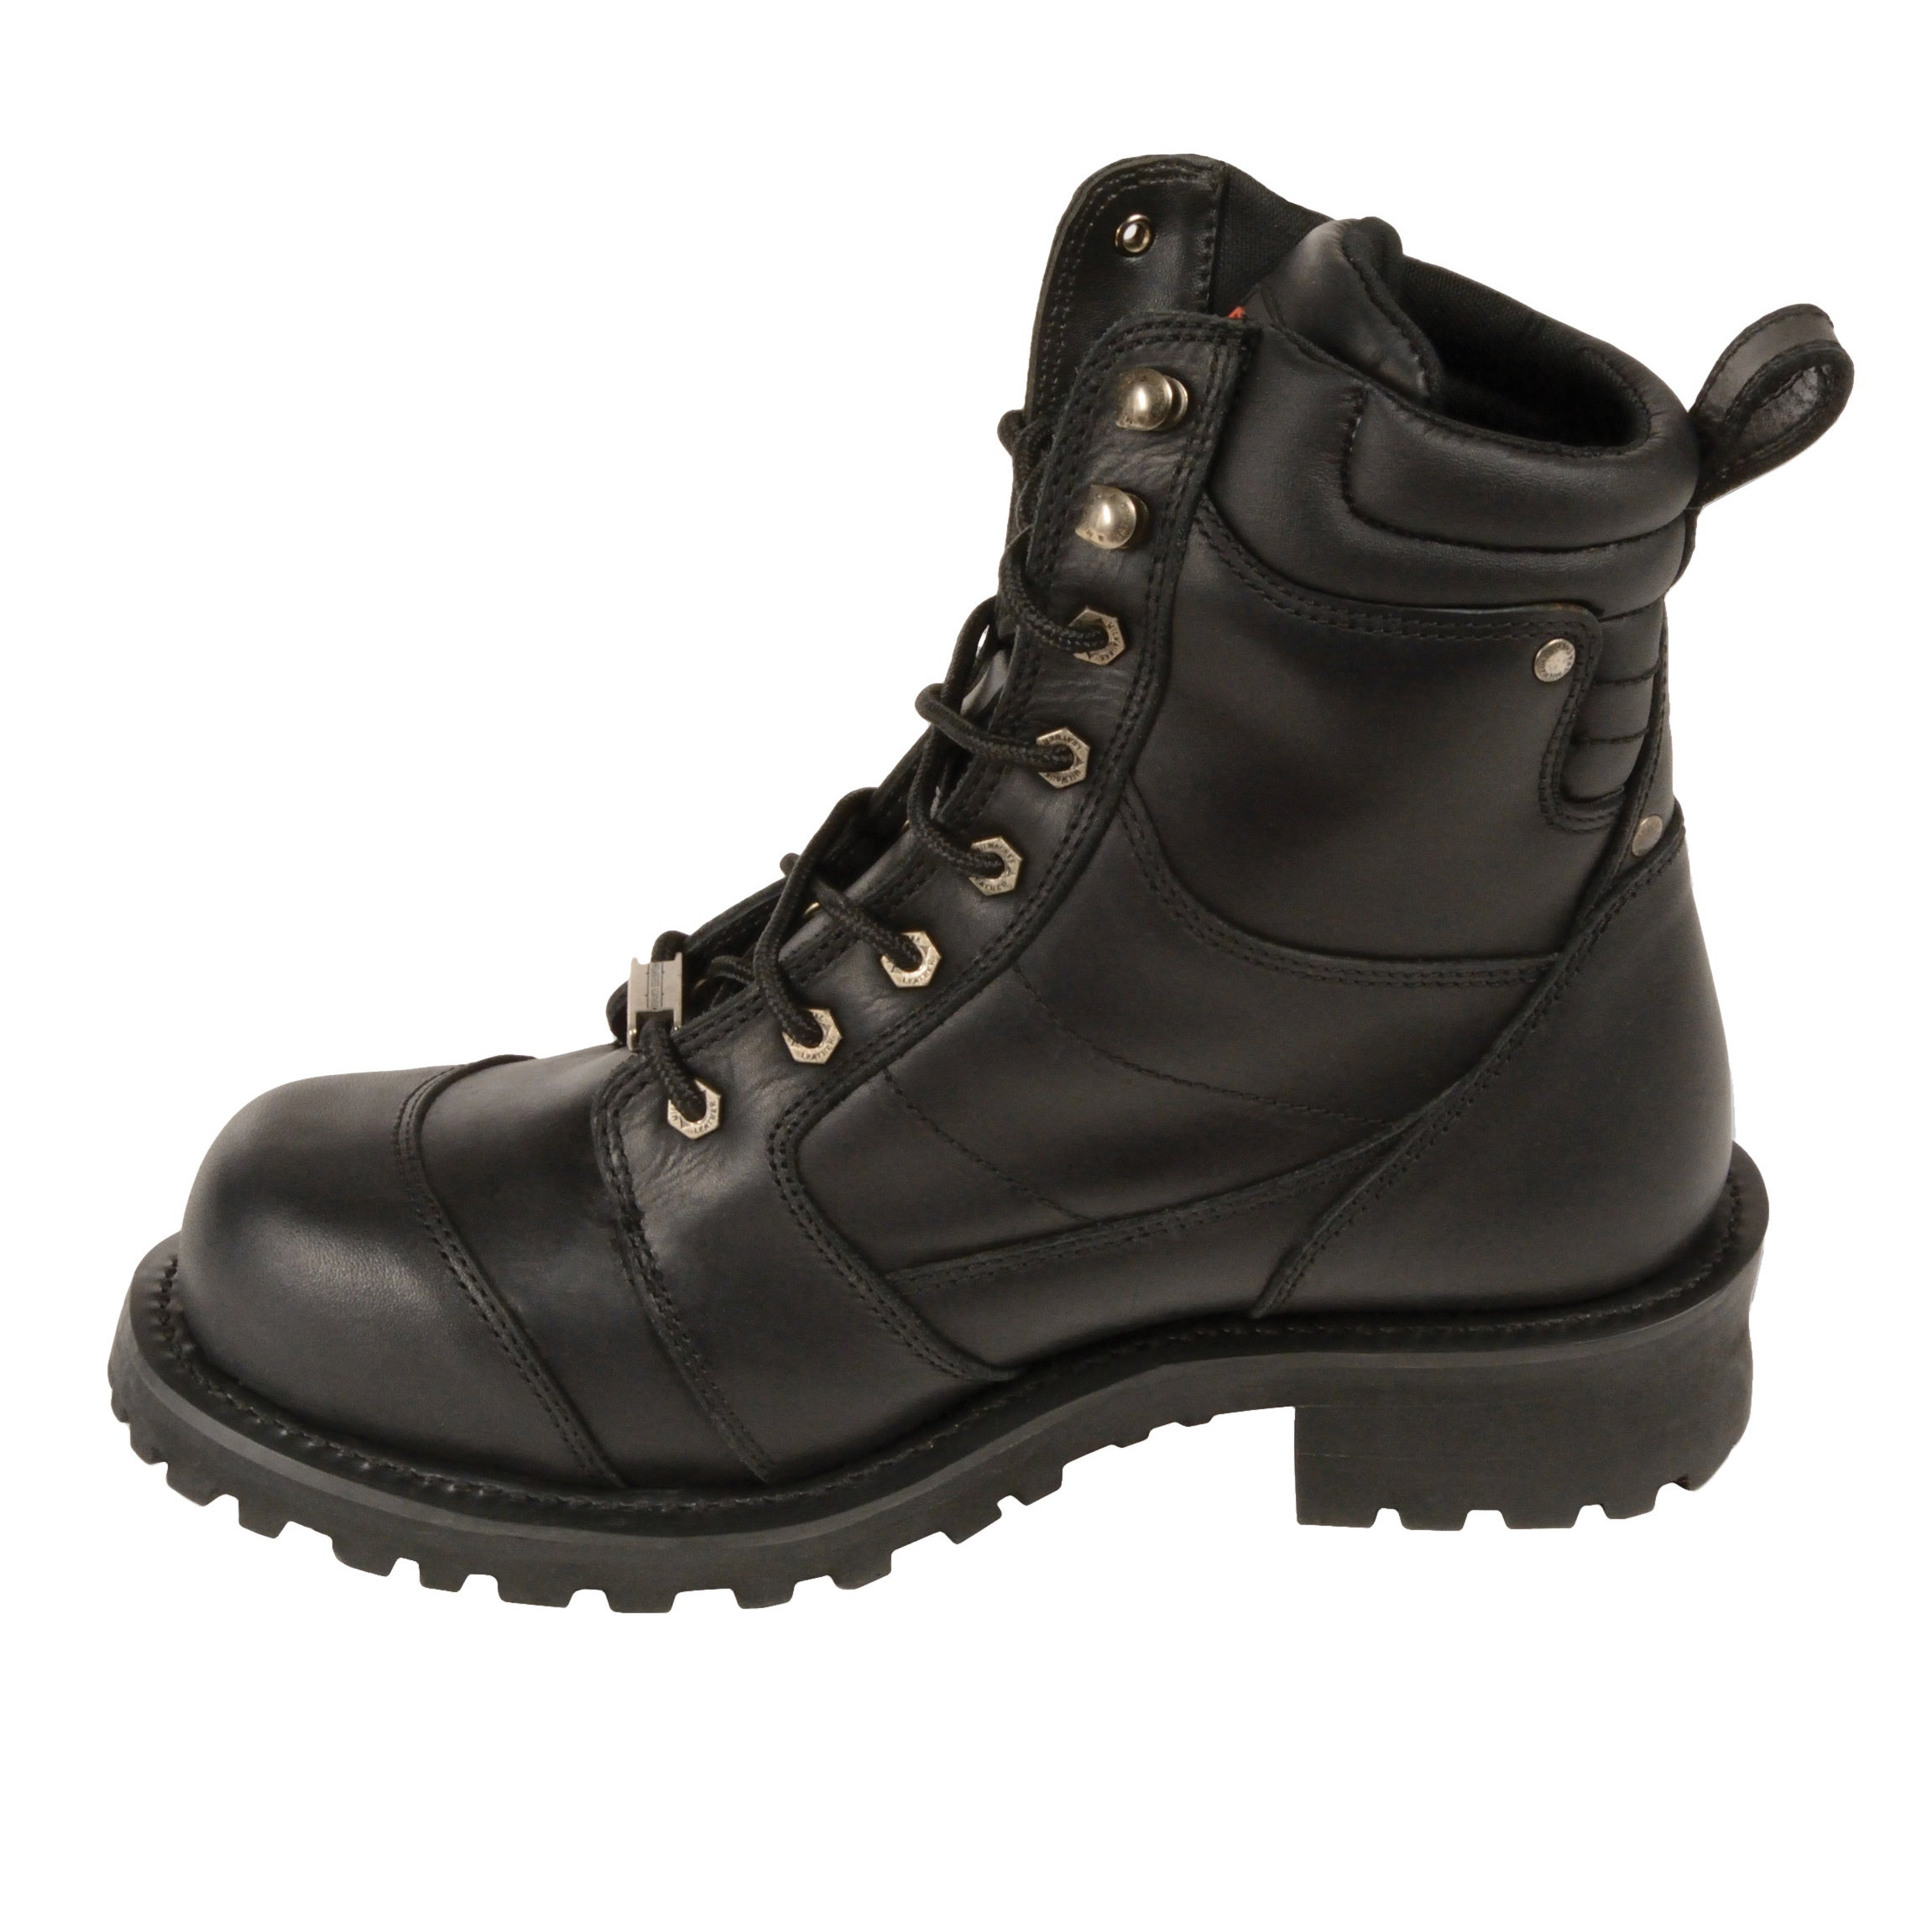 Milwaukee Mens Classic Motorcycle Boots Black, Size 9